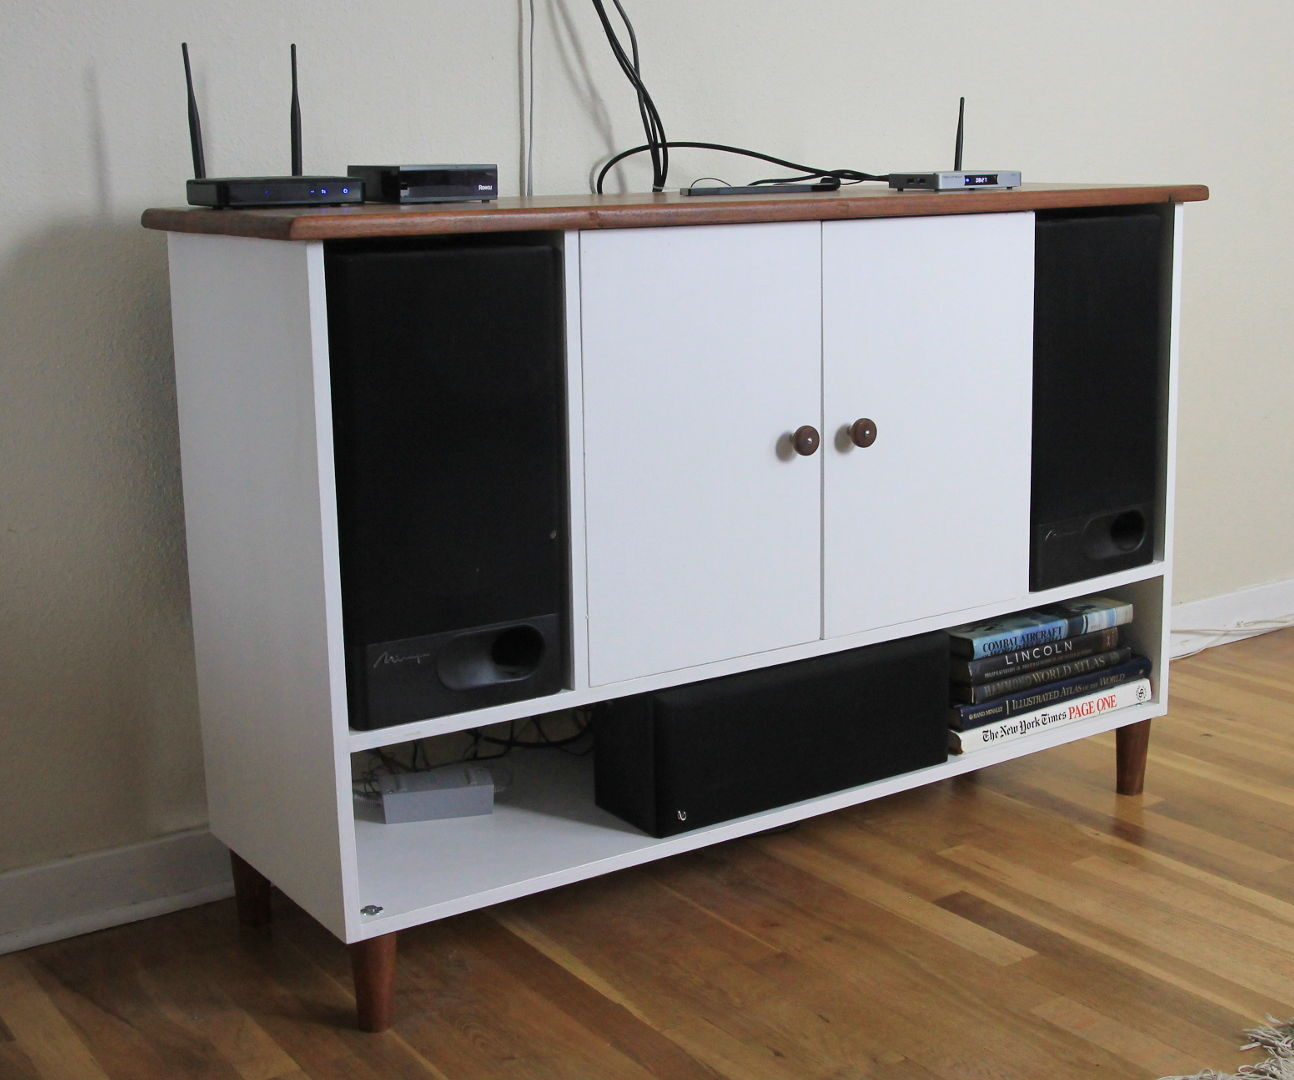 Building a Hardwood Counter and a Media Stand